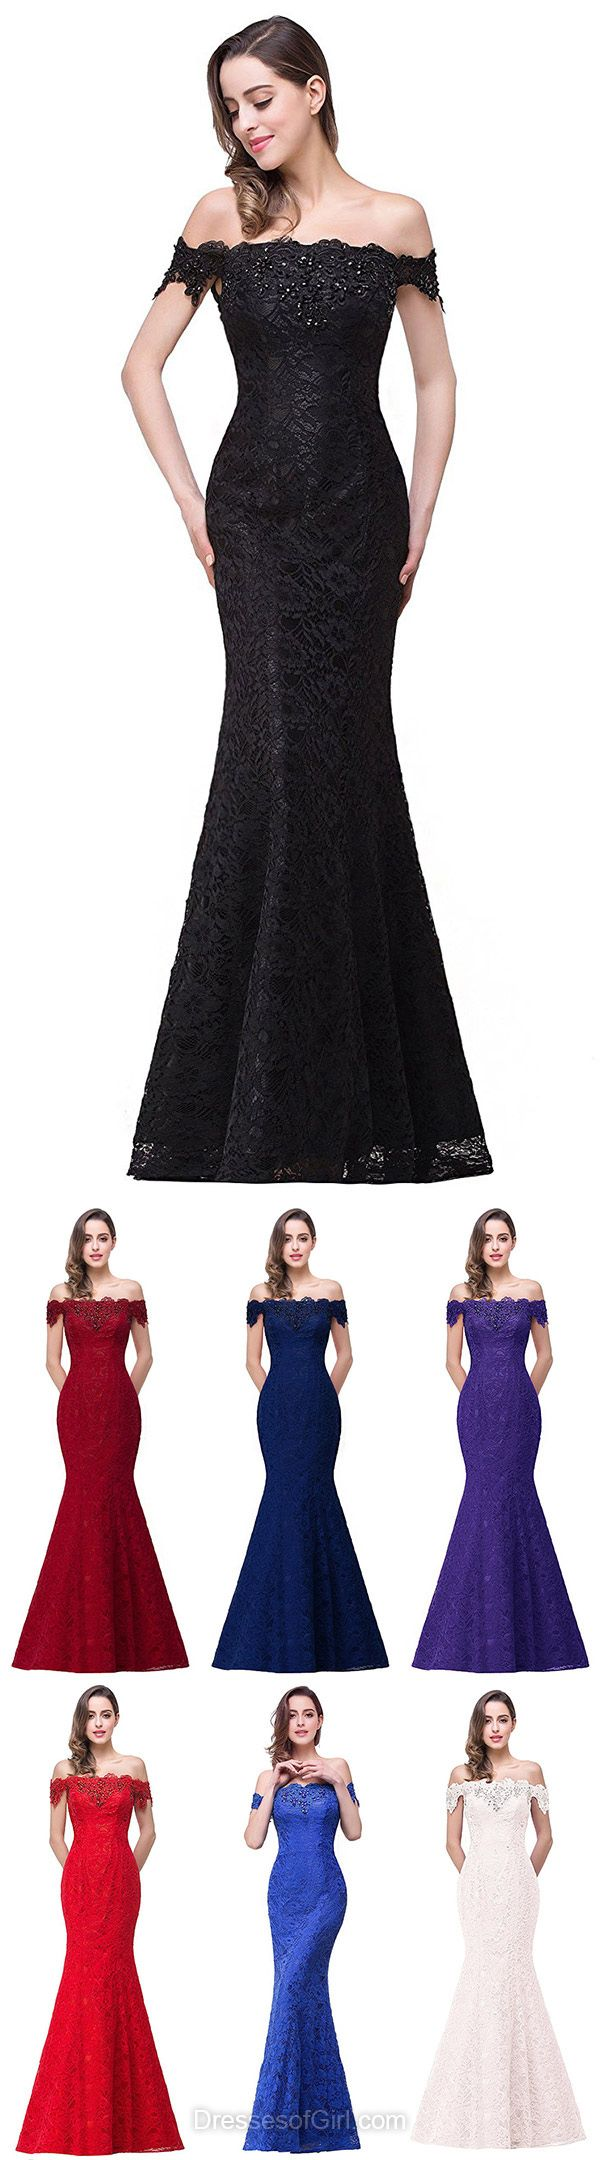 Trumpet/Mermaid Long Formal Dresses, Off-the-shoulder Lace Evening Party Gowns,Beading Prom Dresses